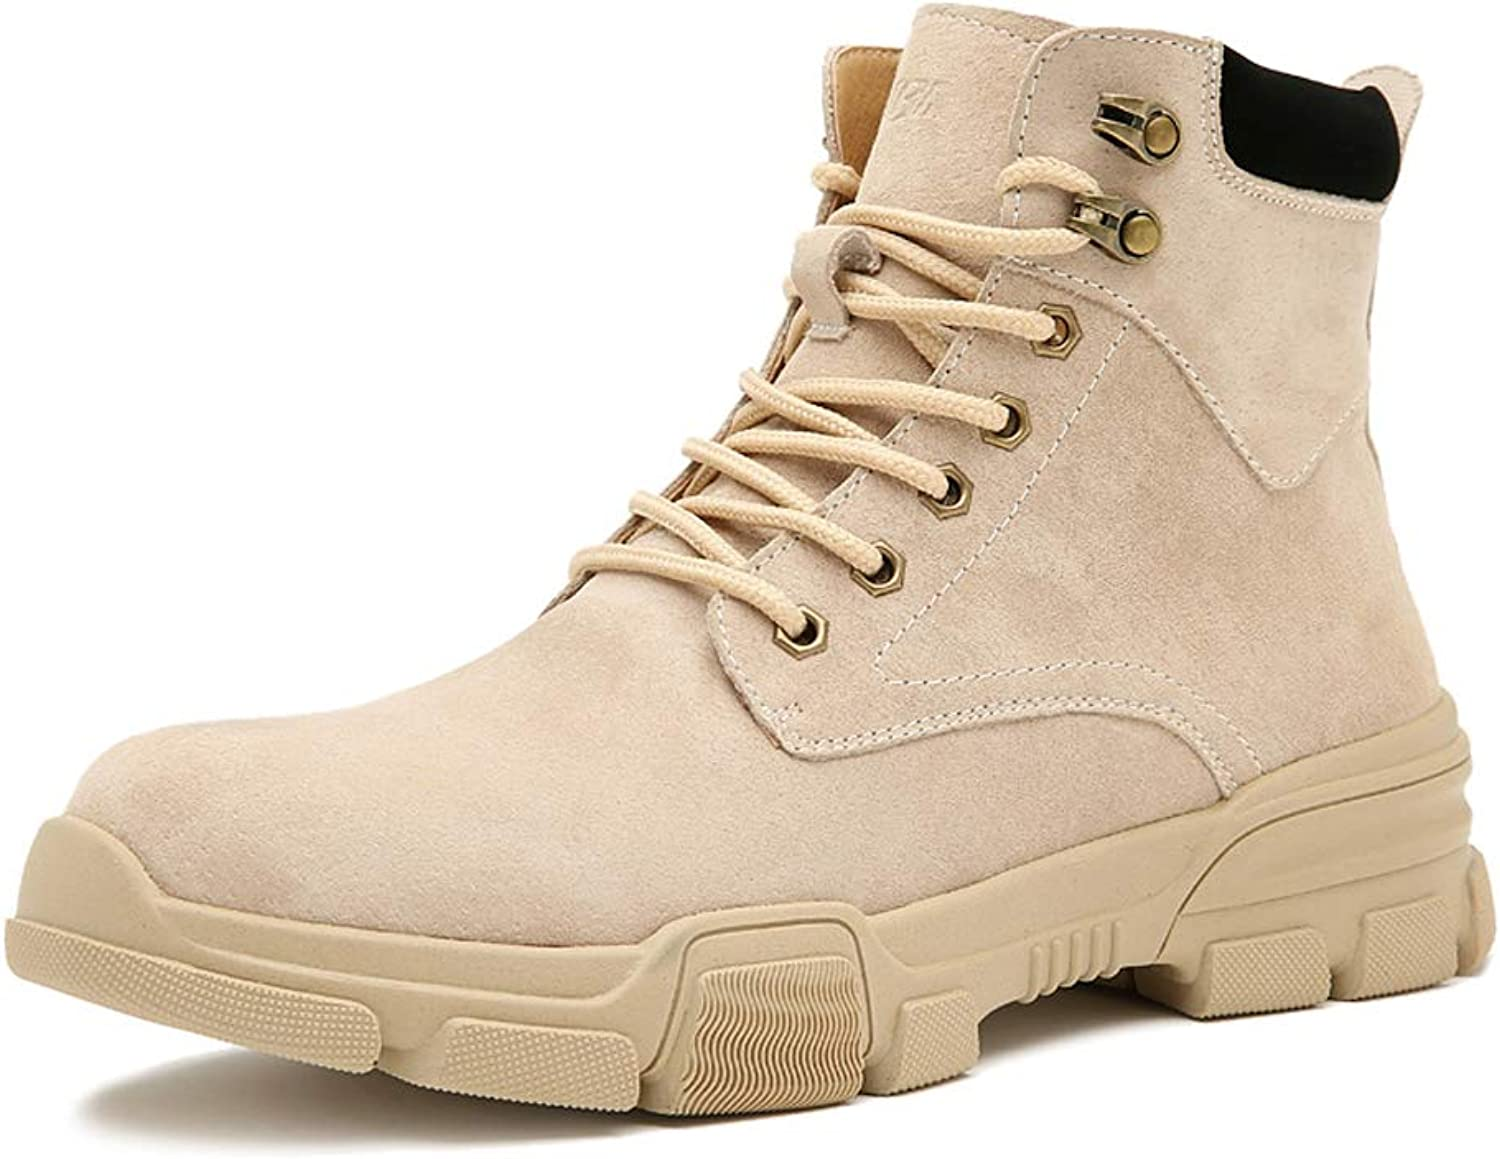 UBCATBA Mens Casual shoes Winter Leather Martin Boots High Top Sneakers